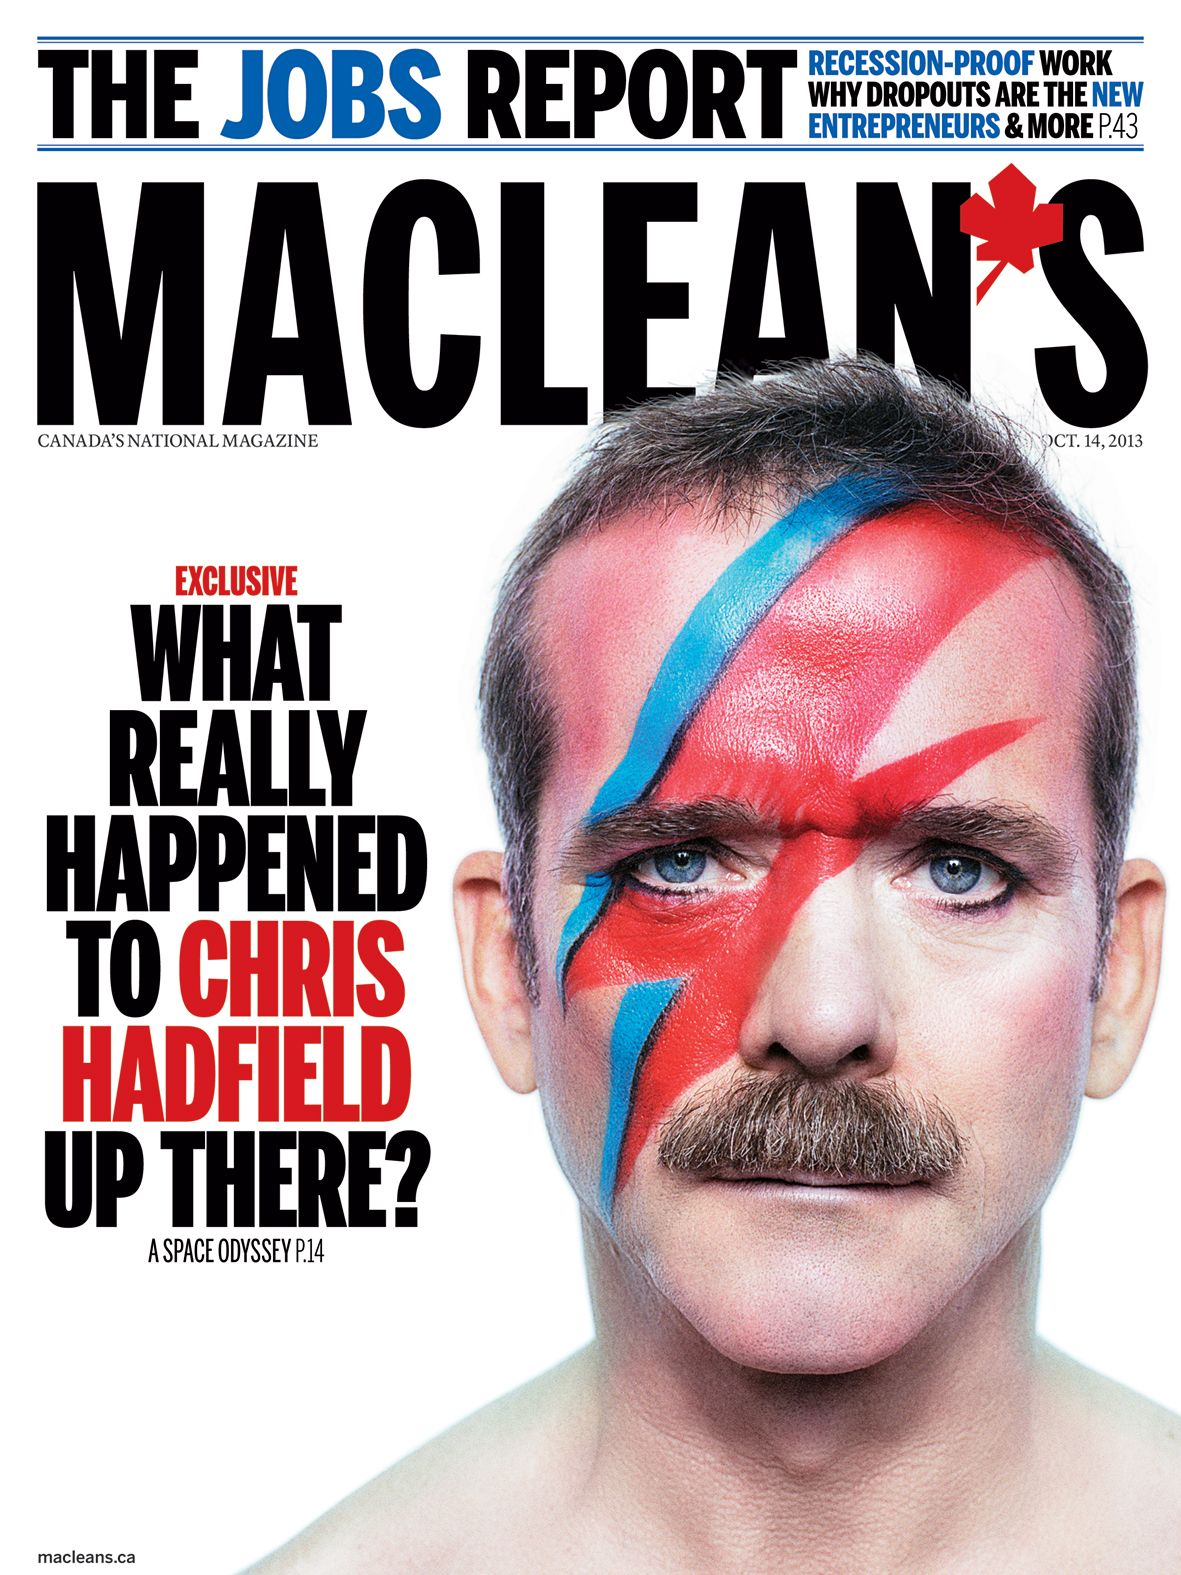 Chris Hadfield - How to cut hair in space